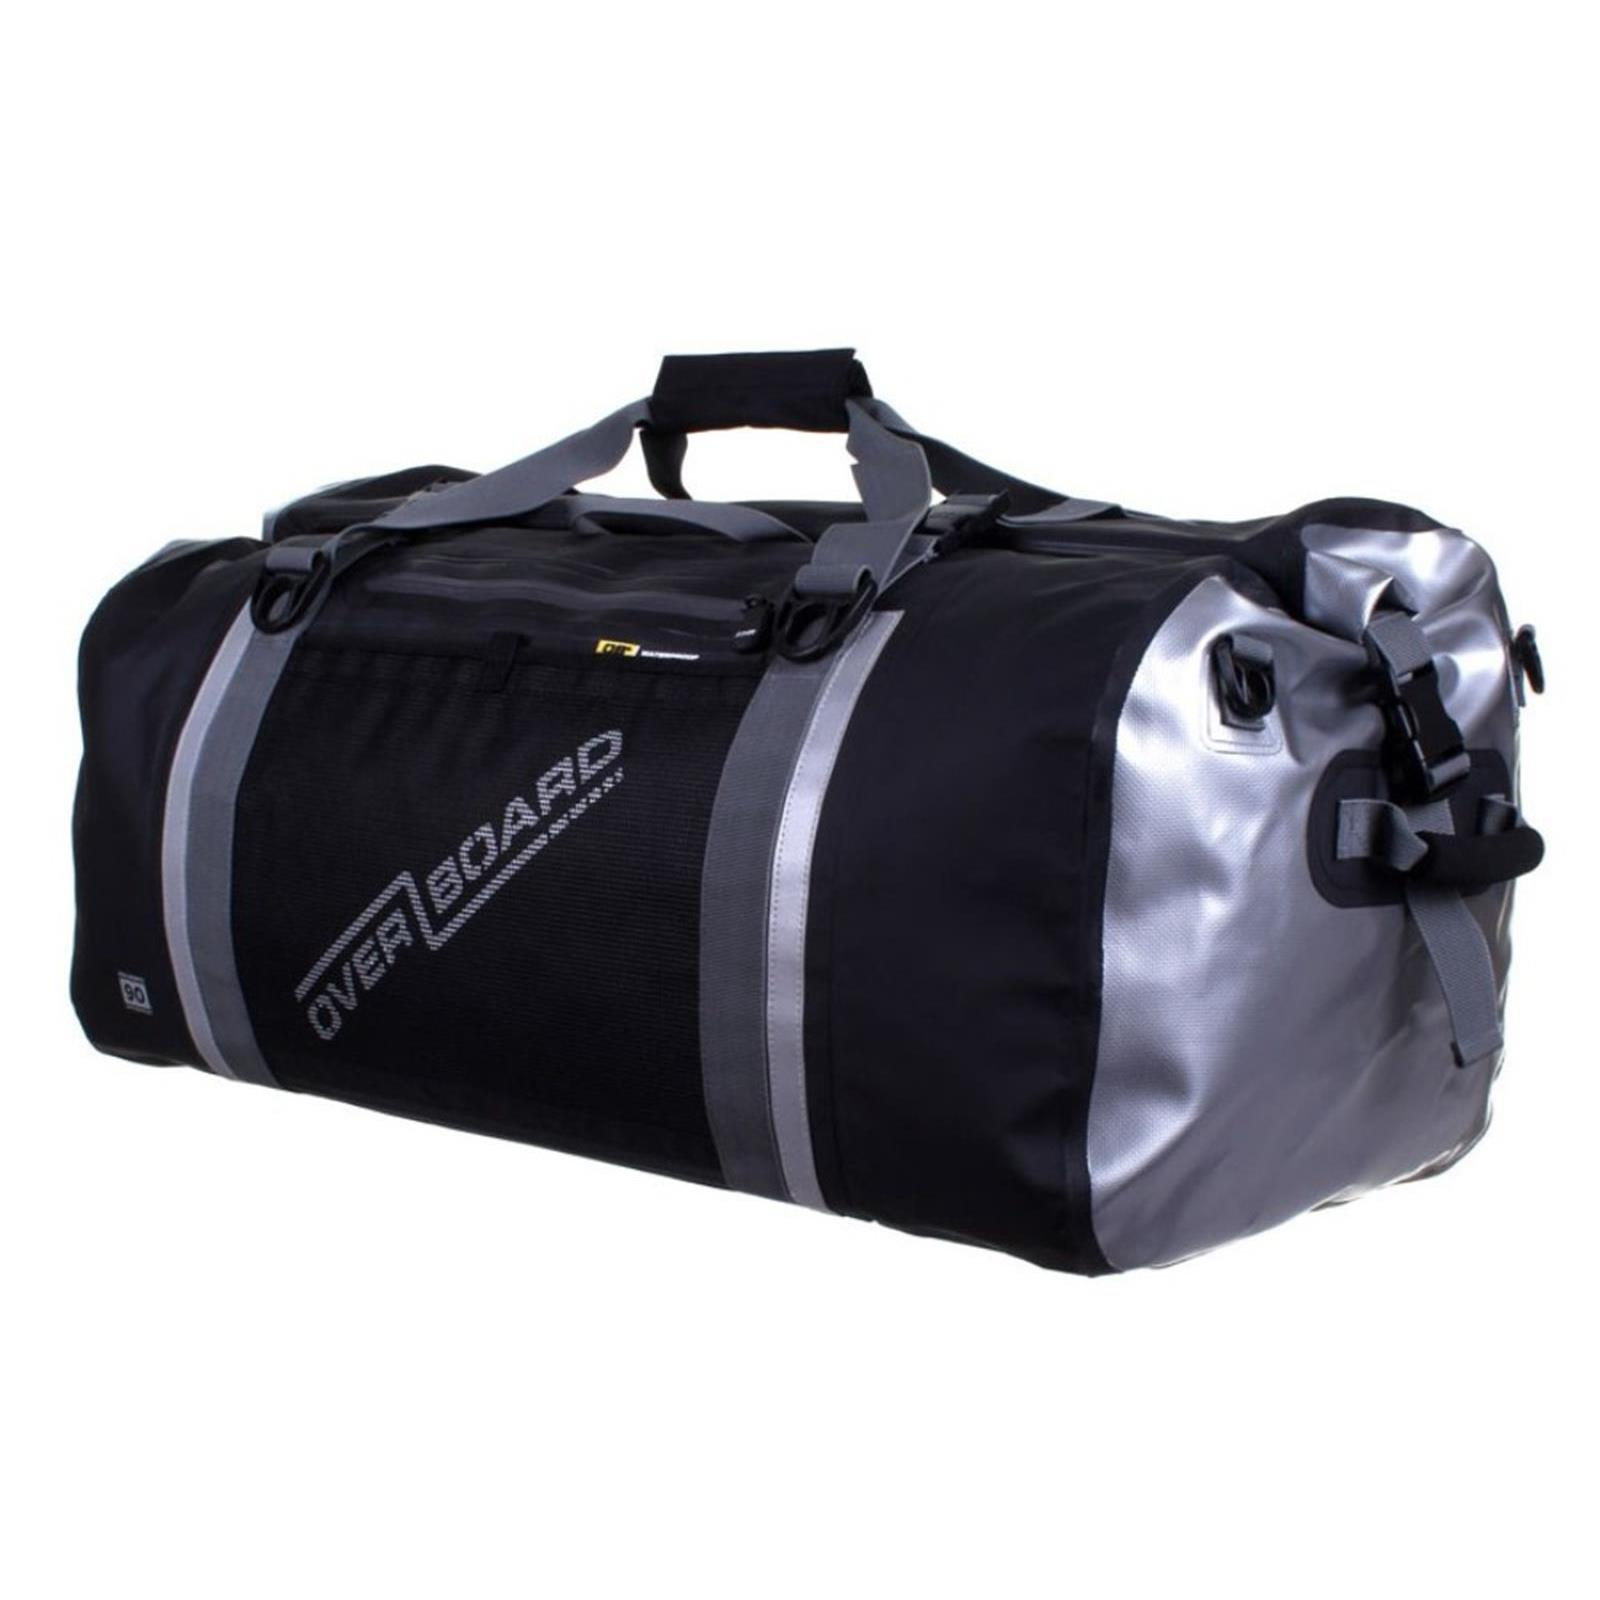 OverBoard wasserdichte Duffel Bag Sports 90 L Schw OB1155BLK Pro Sports